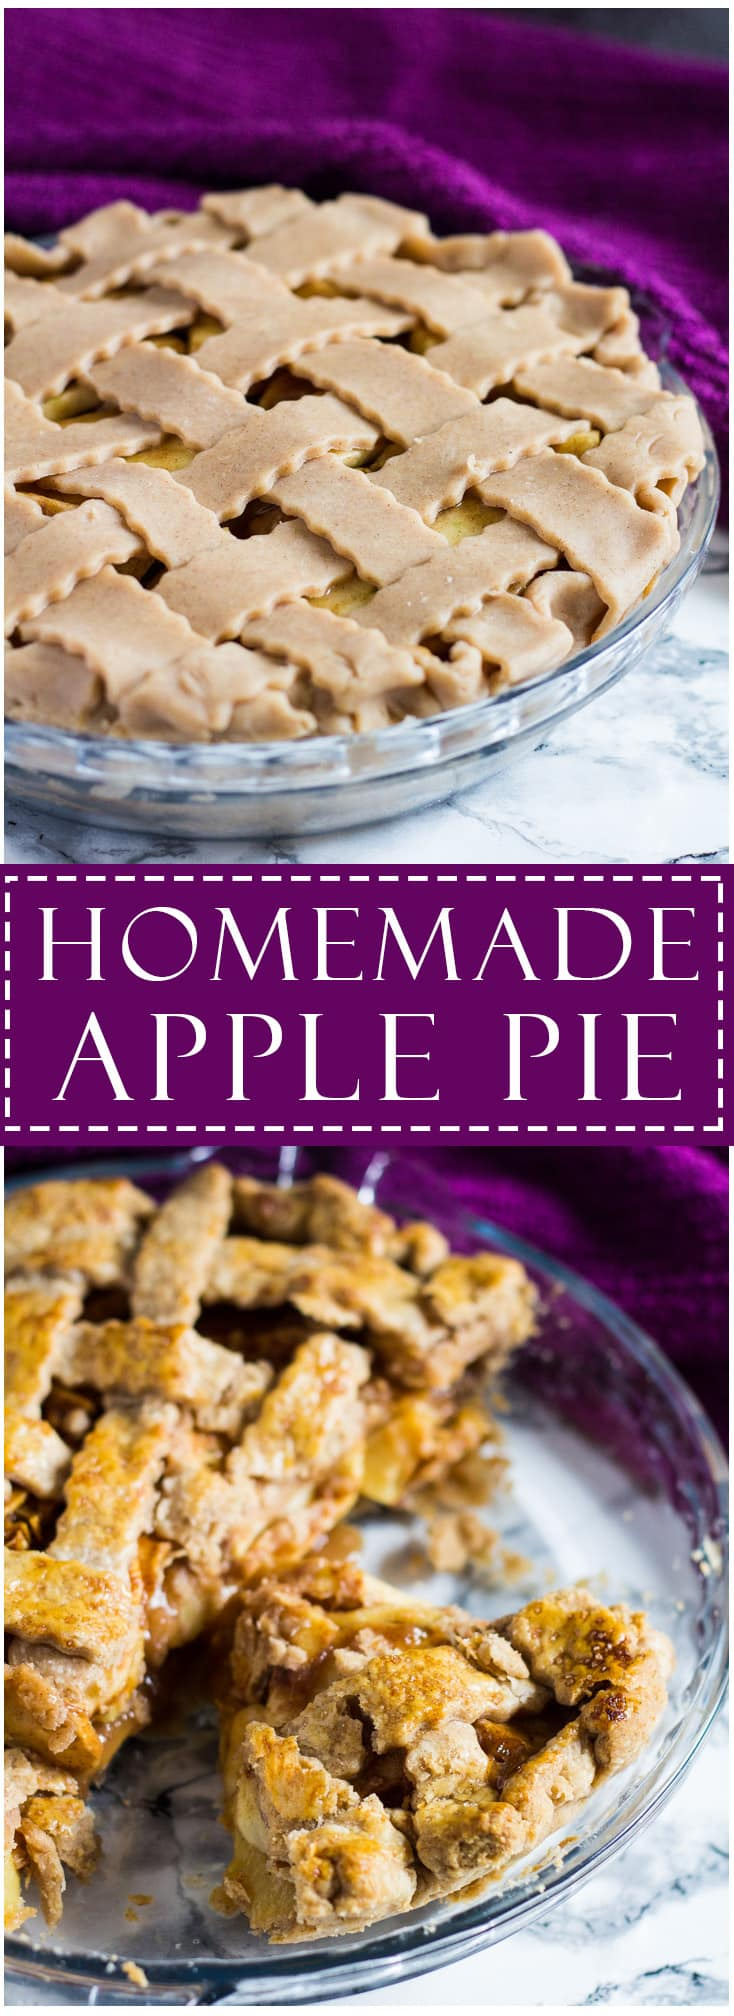 A long image of Homemade Apple Piewith text overlay.